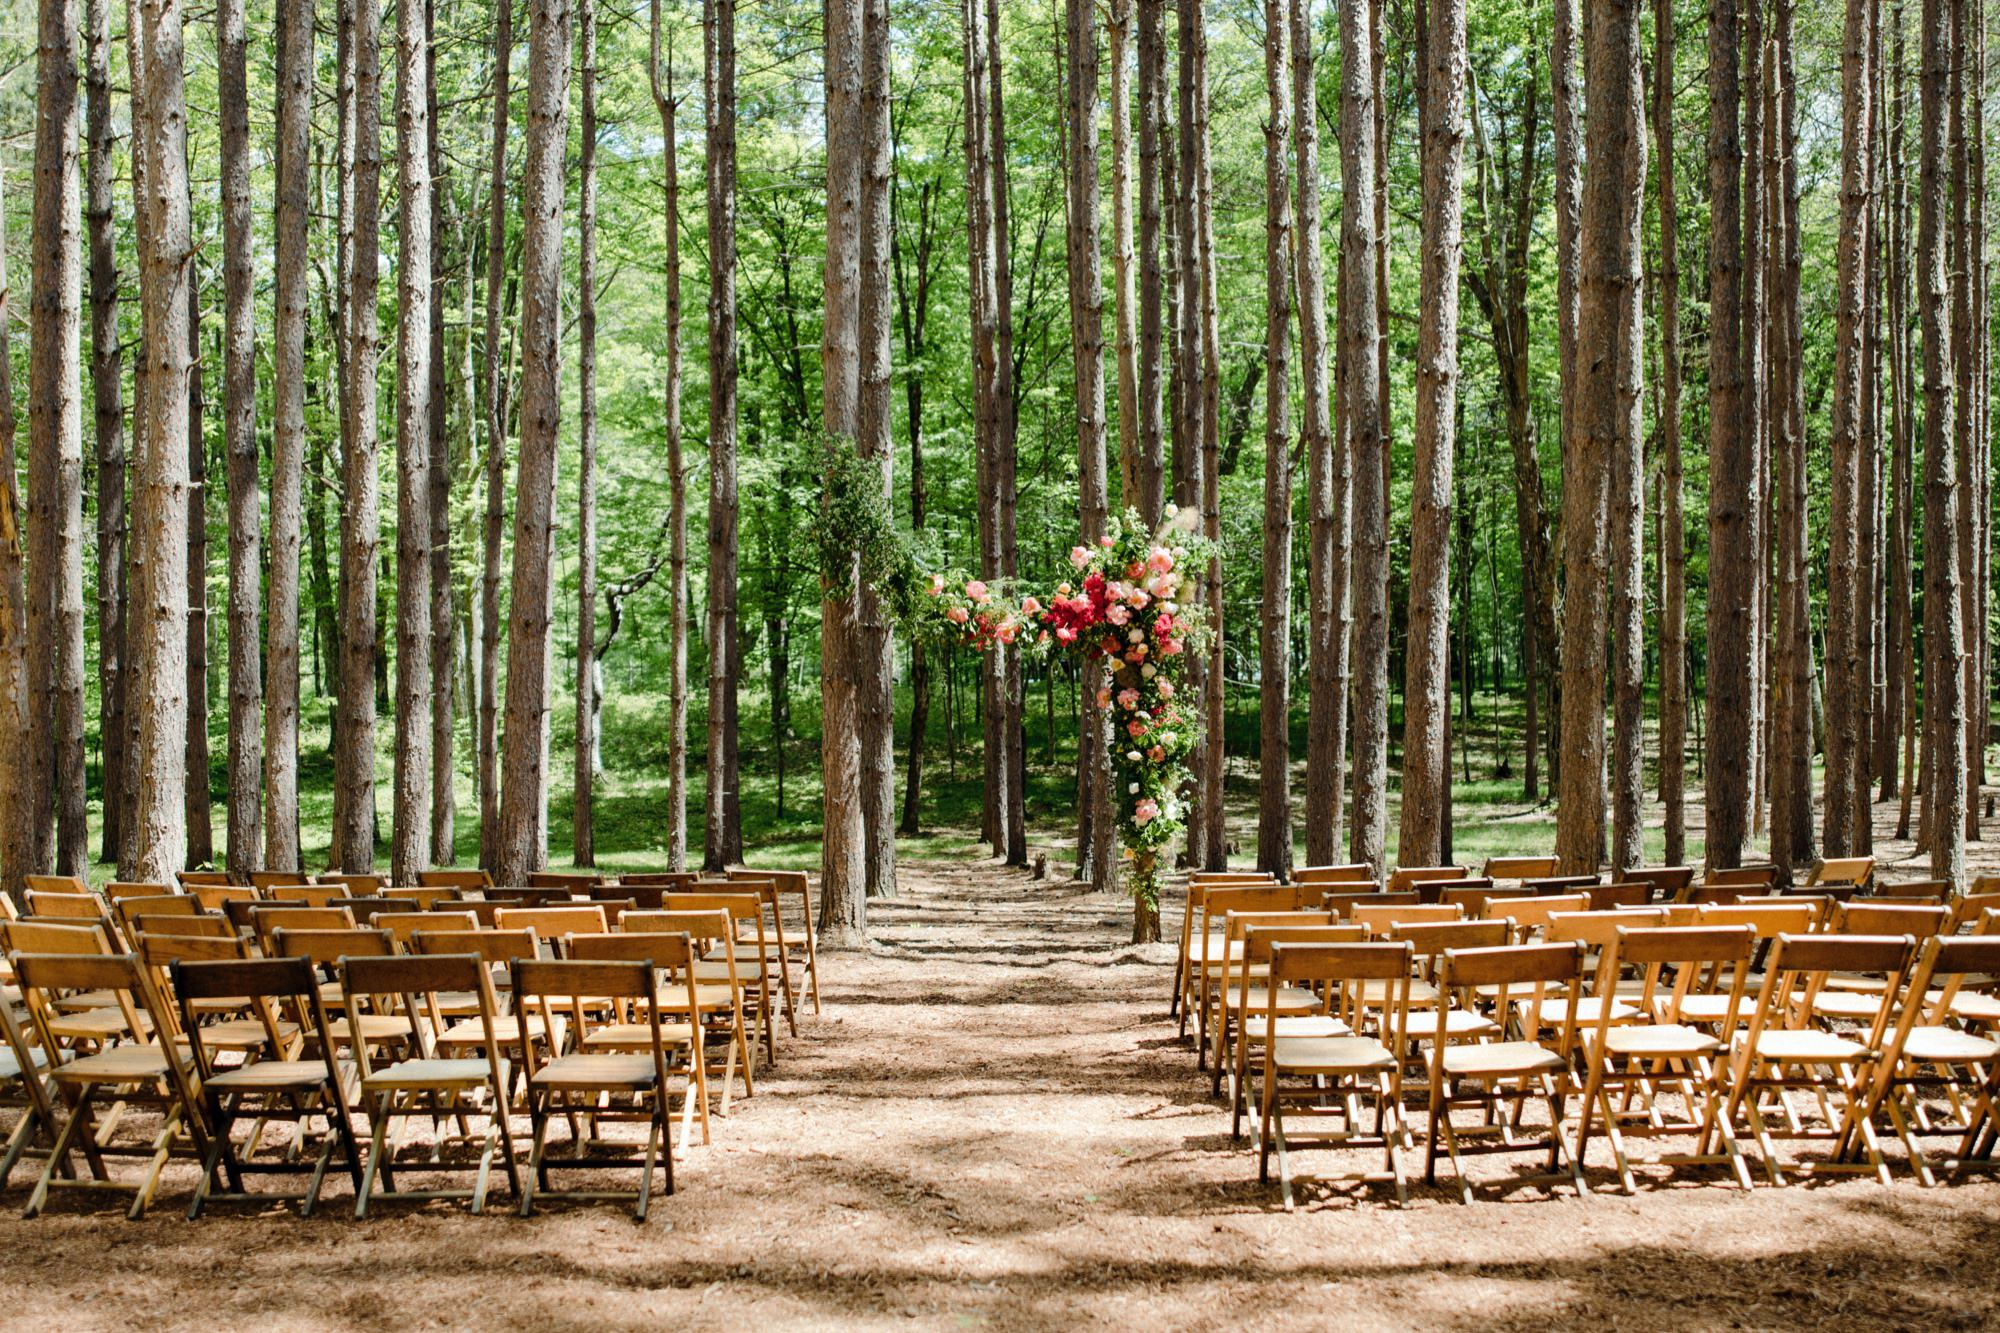 The Pine Grove wedding ceremony location at Roxbury Barn Estate in the Catskills New York